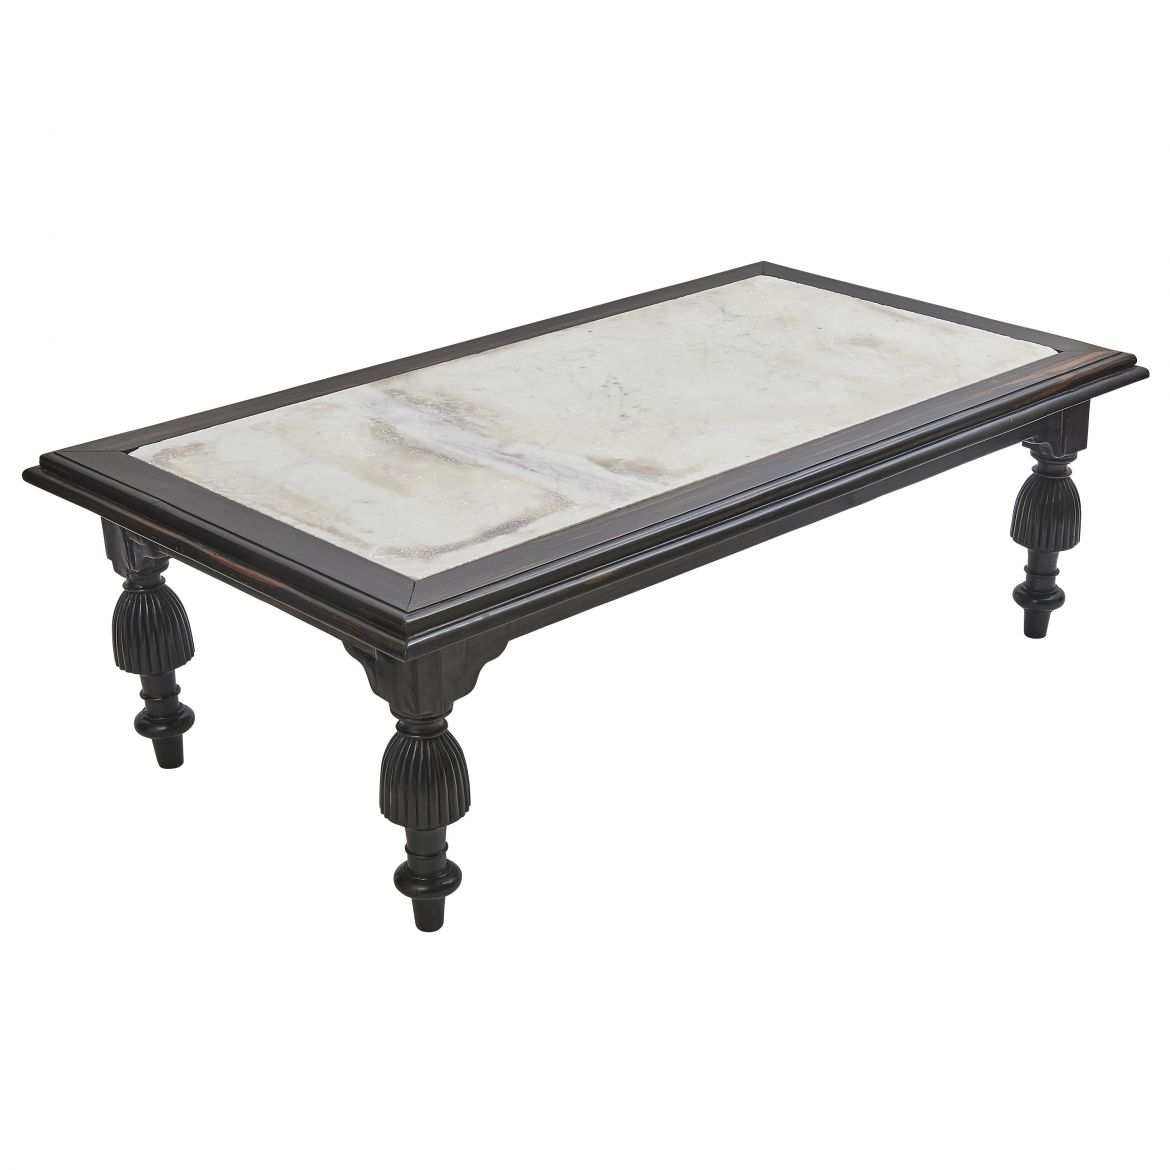 Anglo-Celanese Ebony Coffee Table